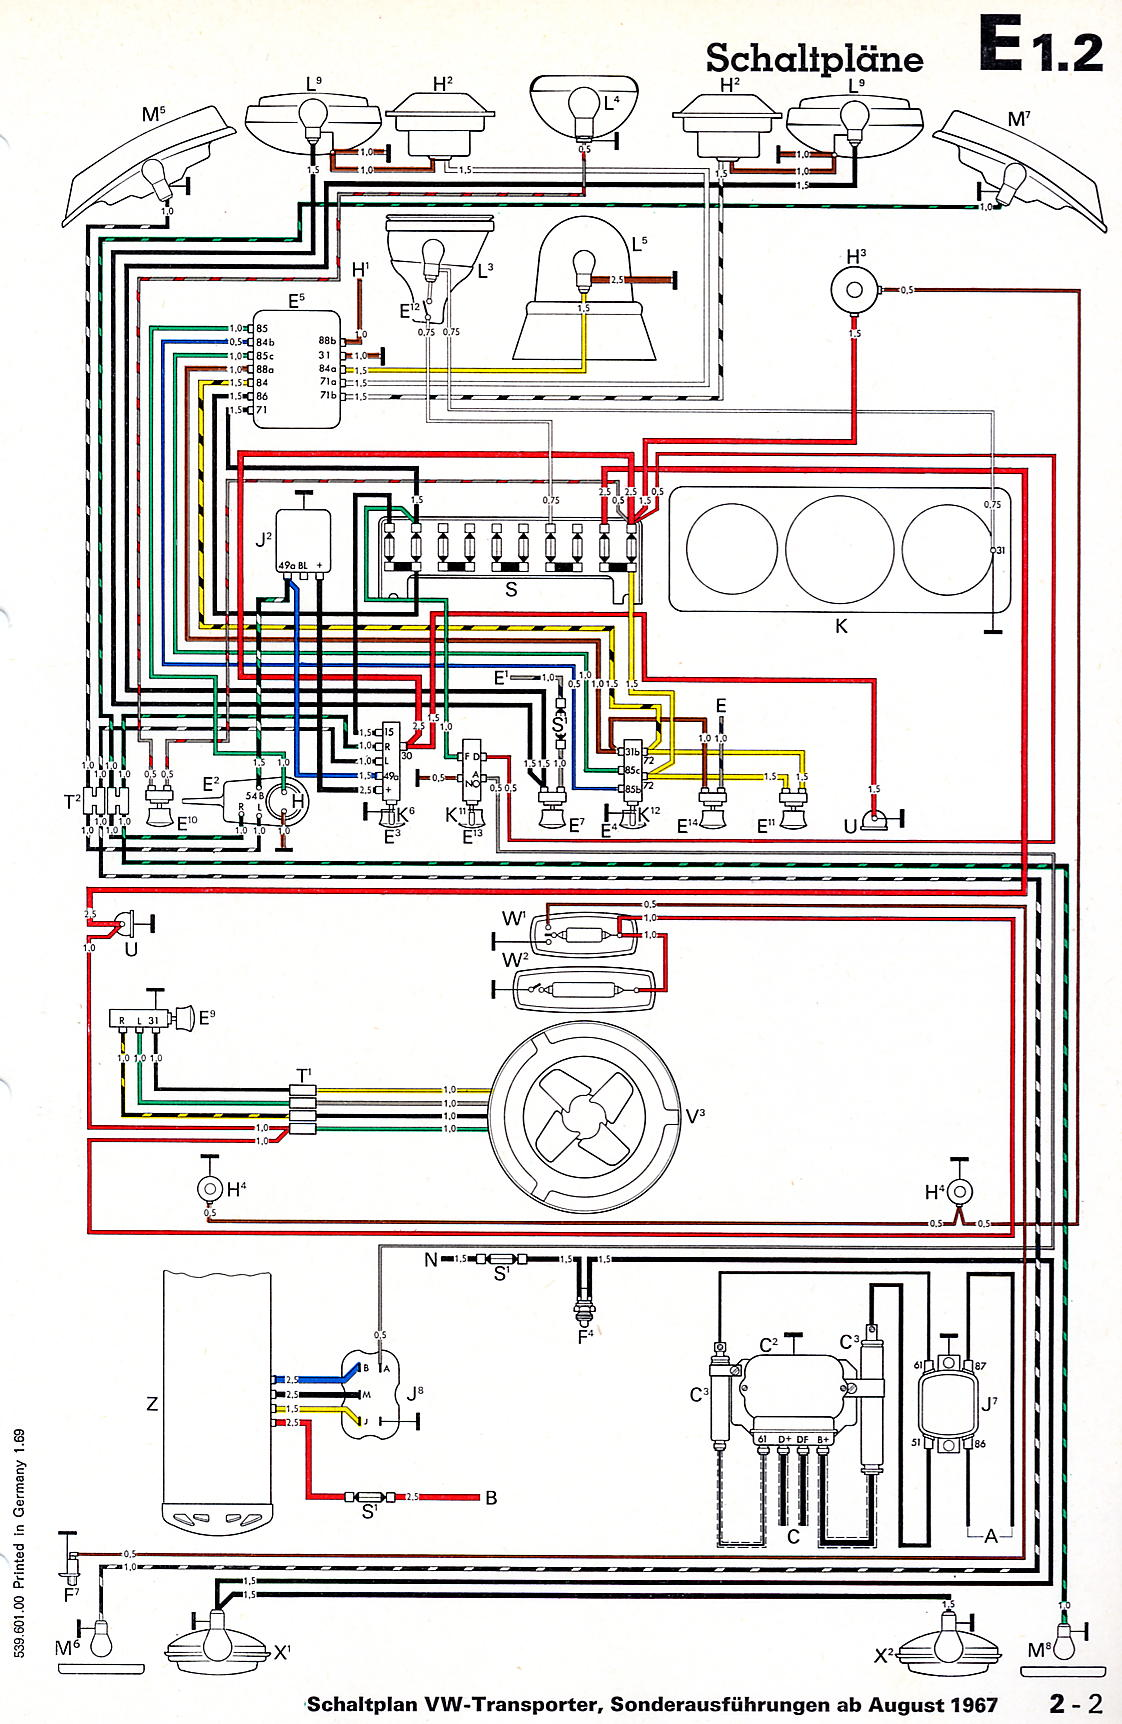 Fox Vw Speedometer Cable Diagram Reveolution Of Wiring Dakota Digital Vintagebus Com Bus And Other Diagrams Rh Mechanical Universal